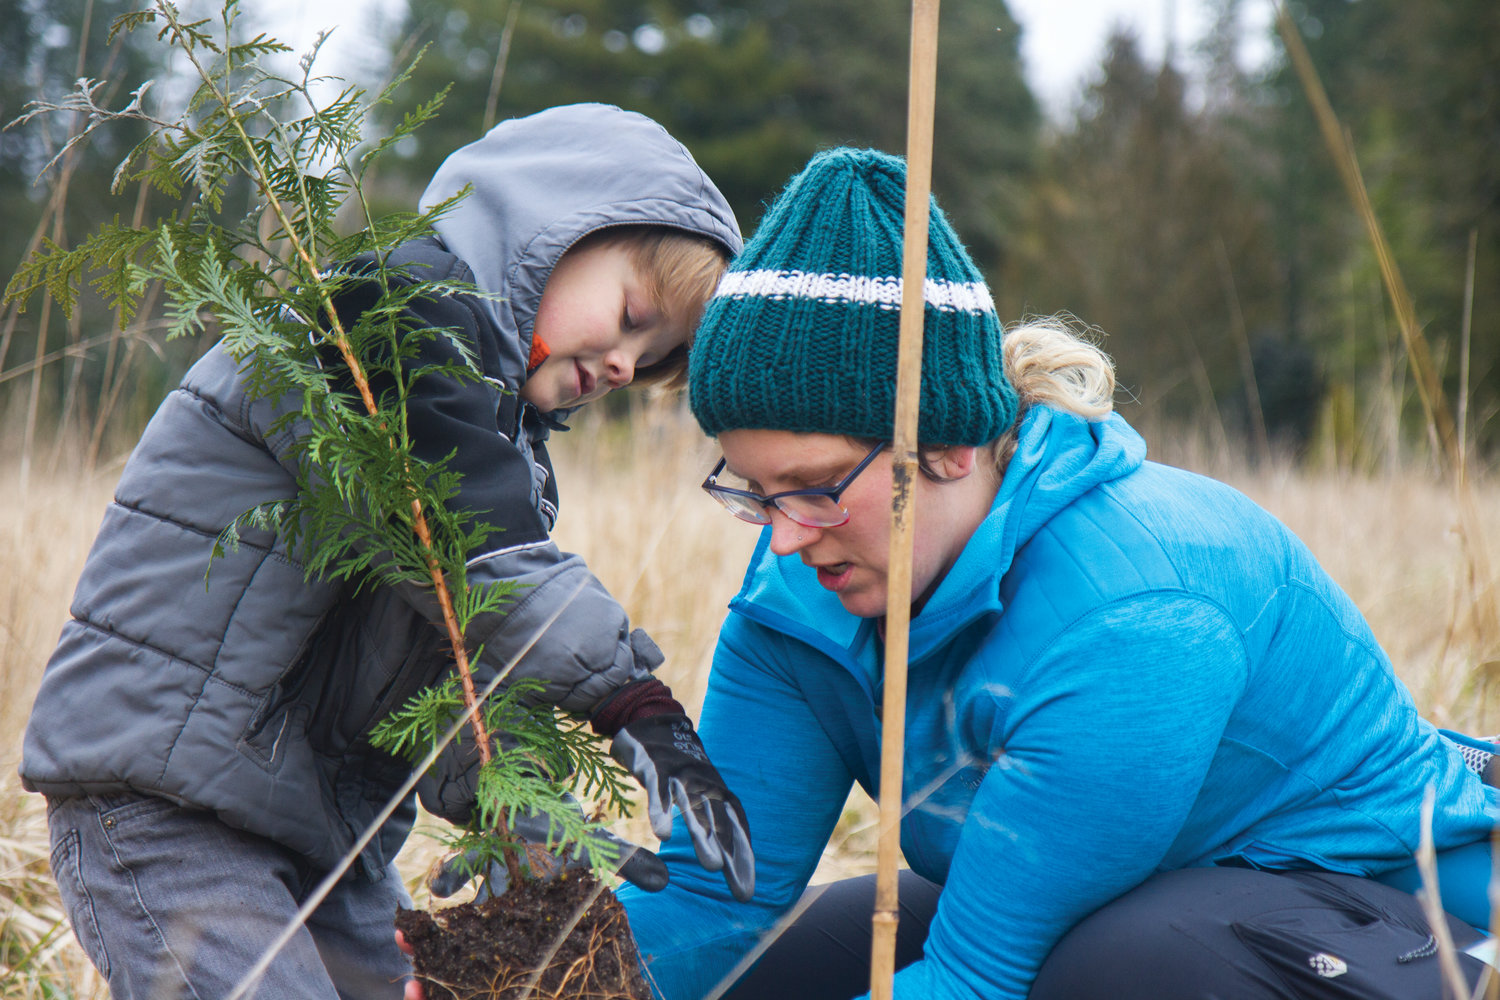 Brighton Stafford and Andrea Stafford work together to plant a cedar sapling at the 13th annual Plant-A-Thon hosted by the Northwest Watershed Institute near Quilcene.